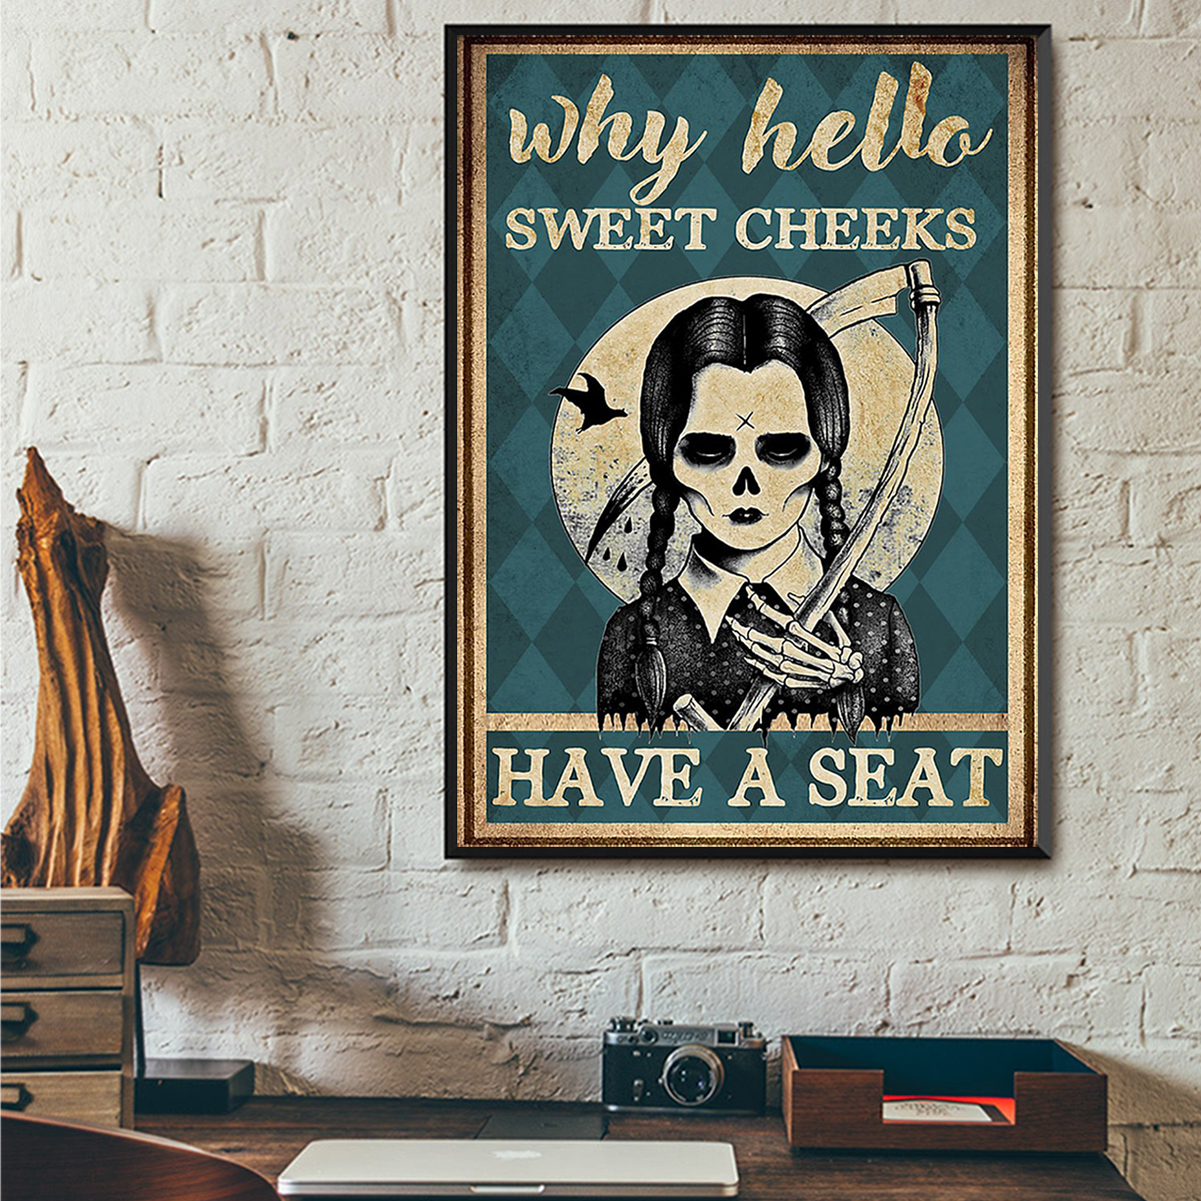 Wednesday addams why hello sweet cheeks poster A3